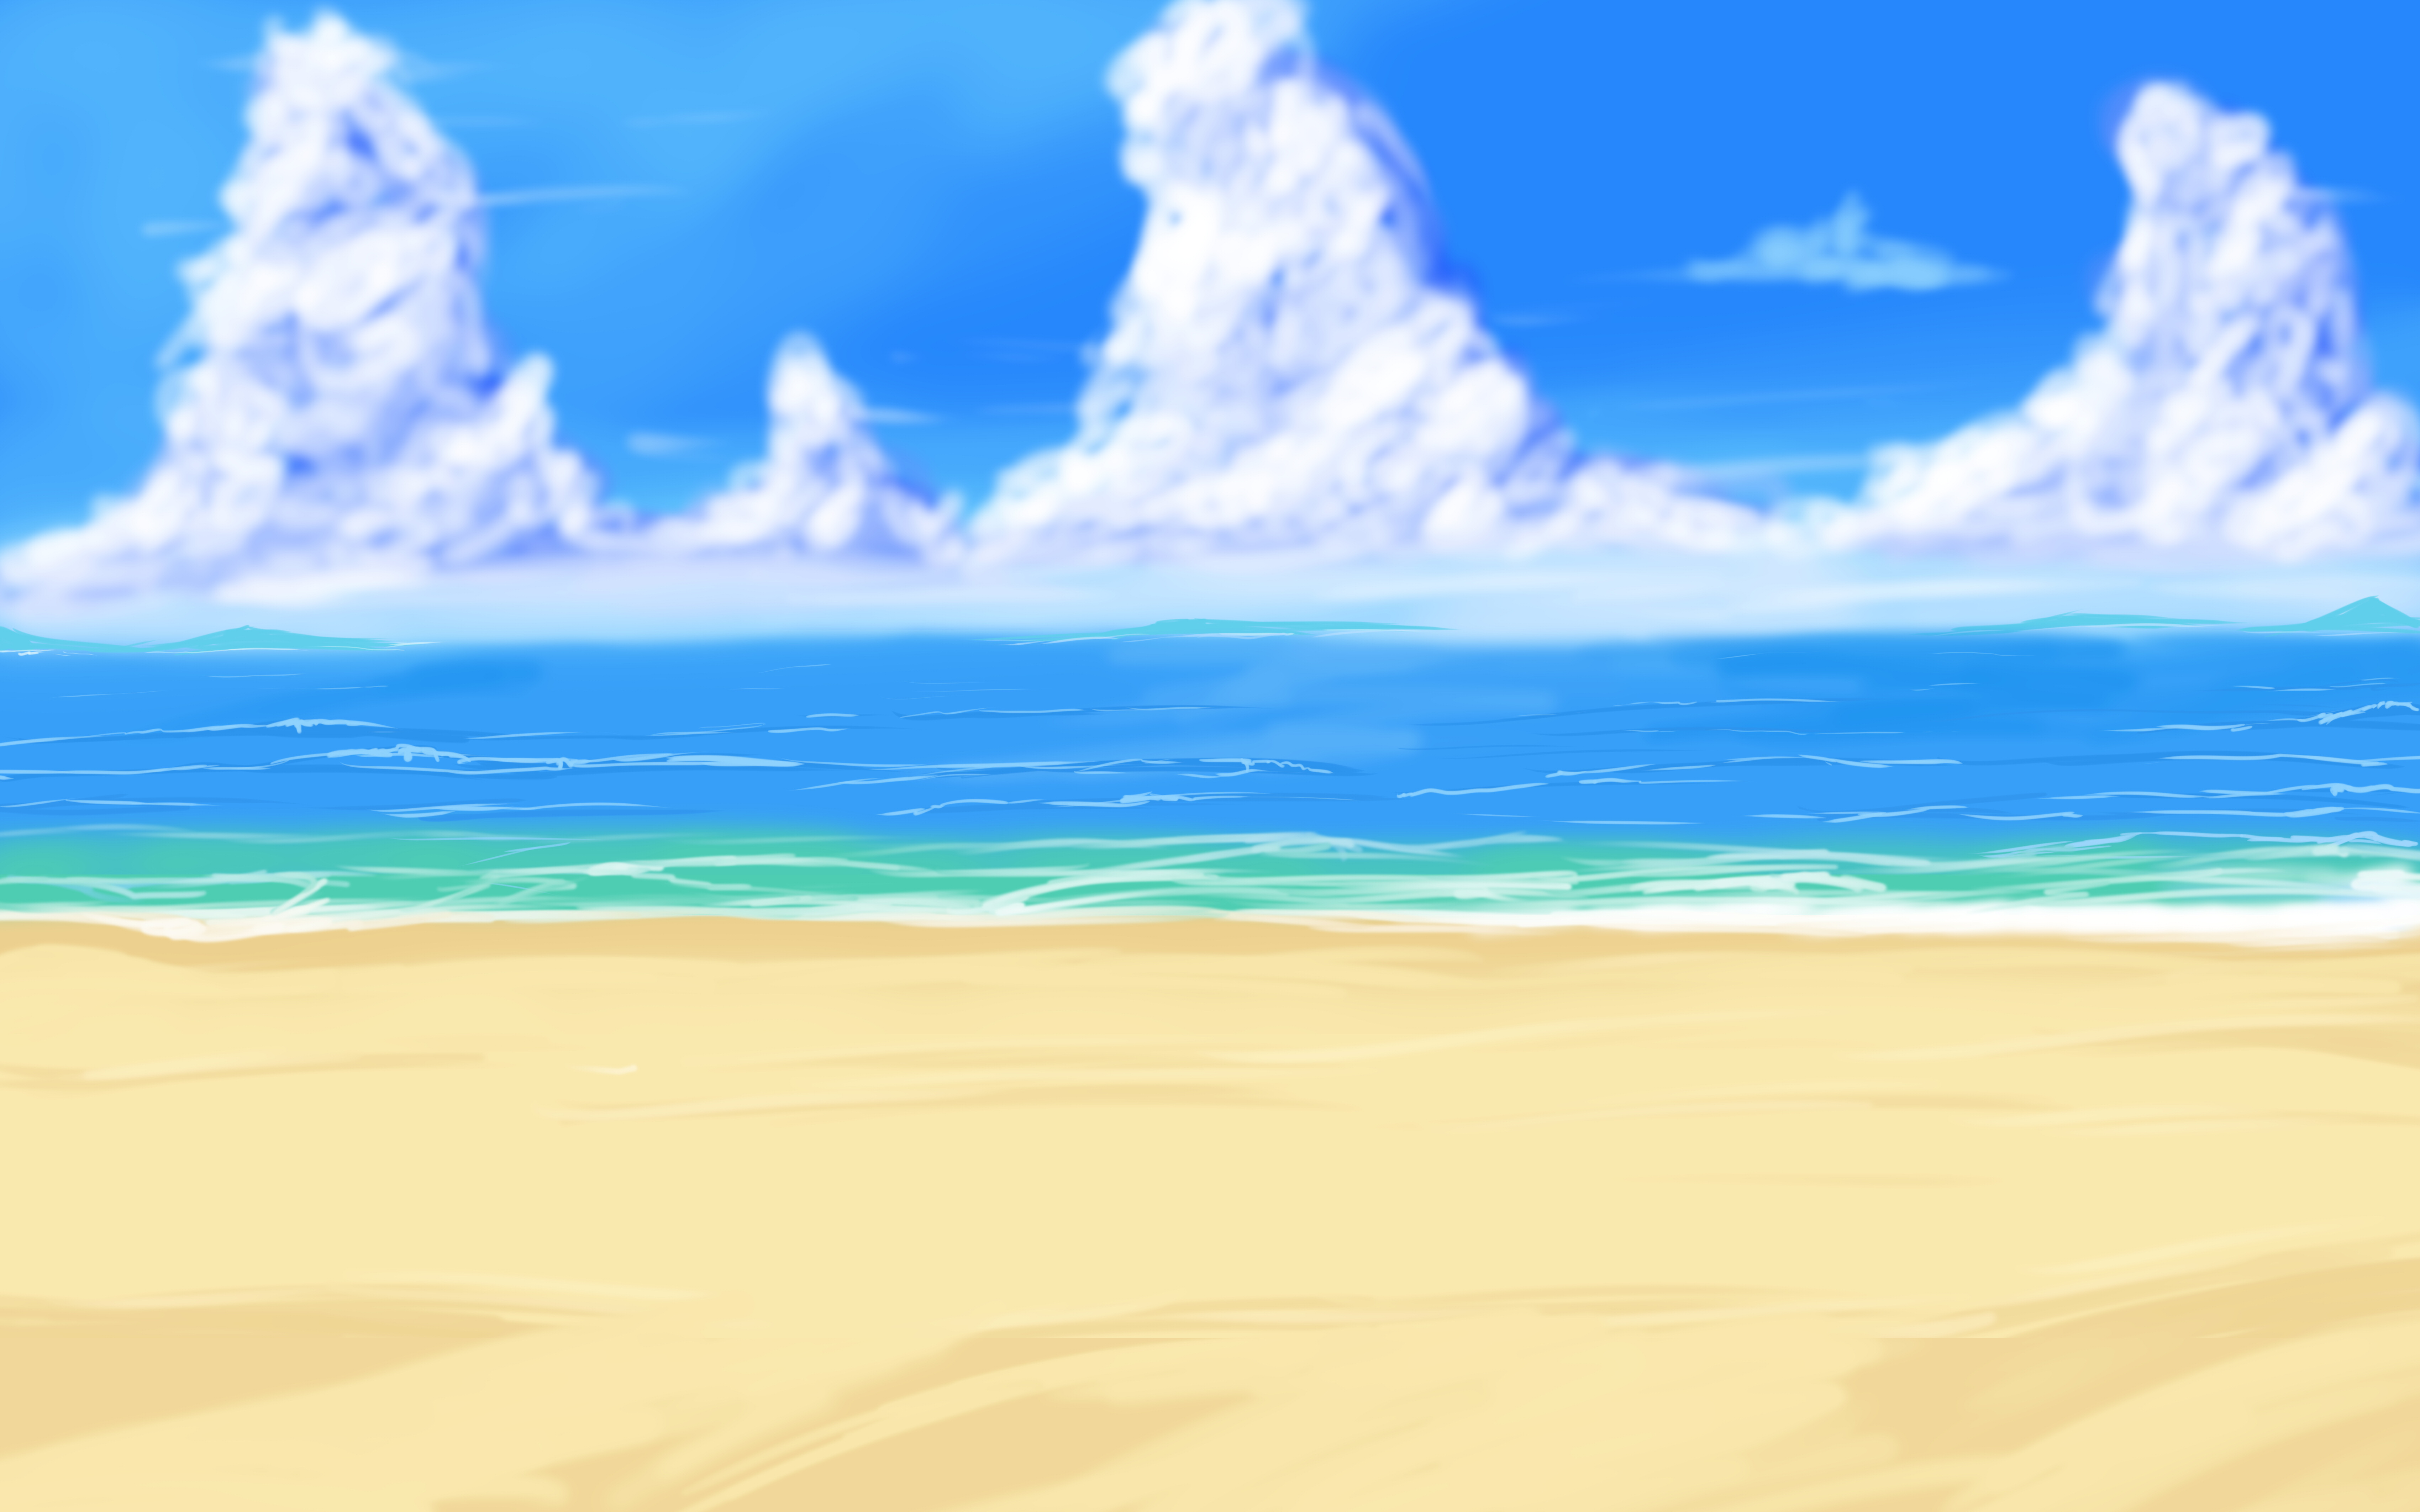 Free Anime Background Png, Download Free Clip Art, Free Clip.